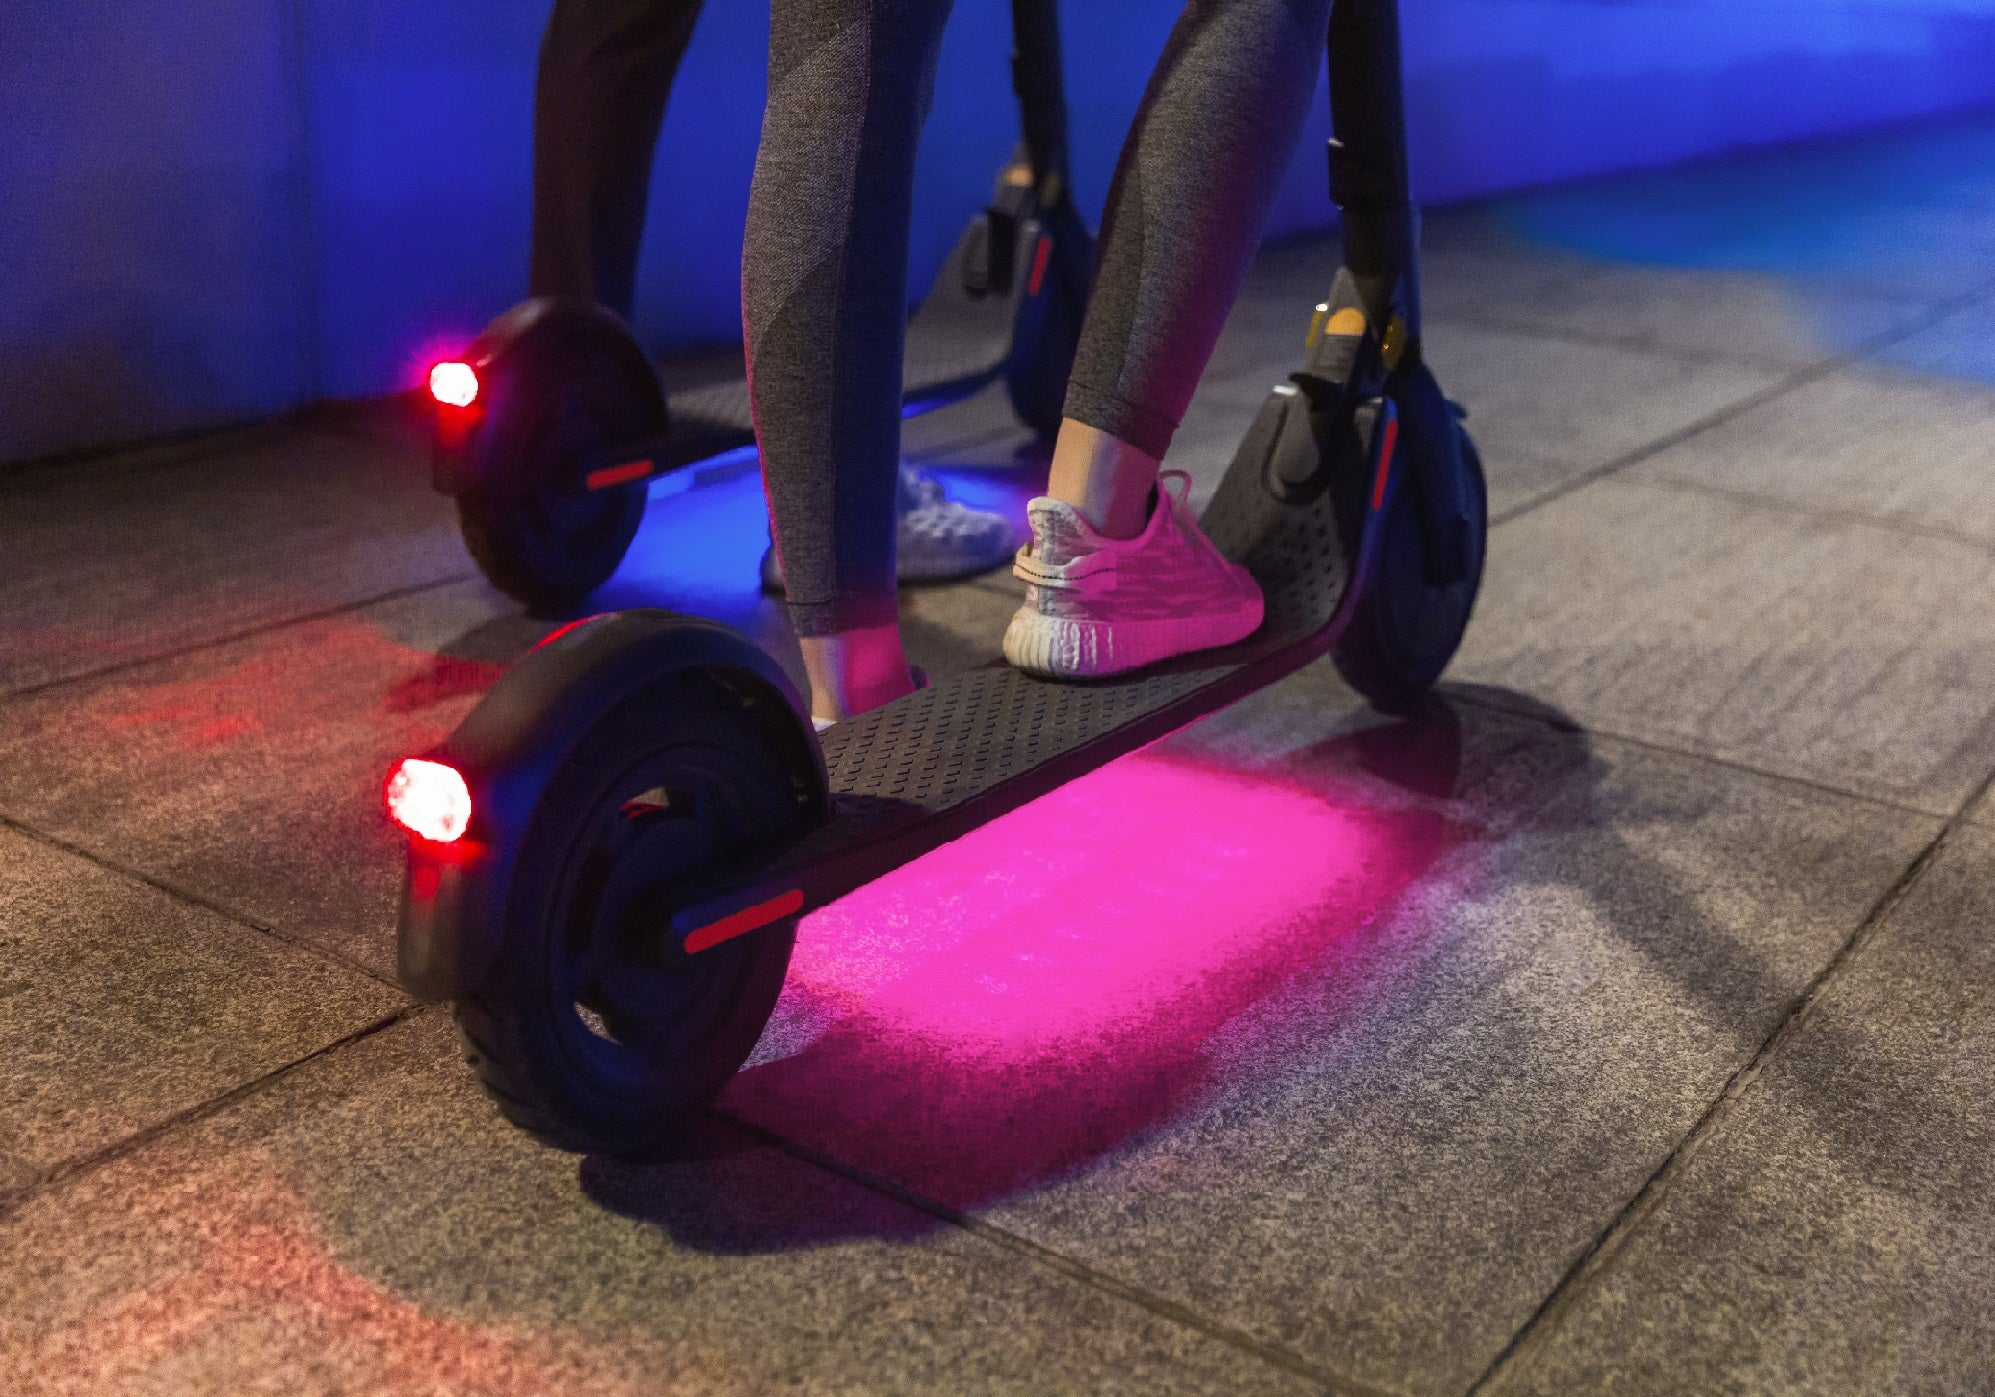 Segway Ninebot E25E Electric Scooter LED lights